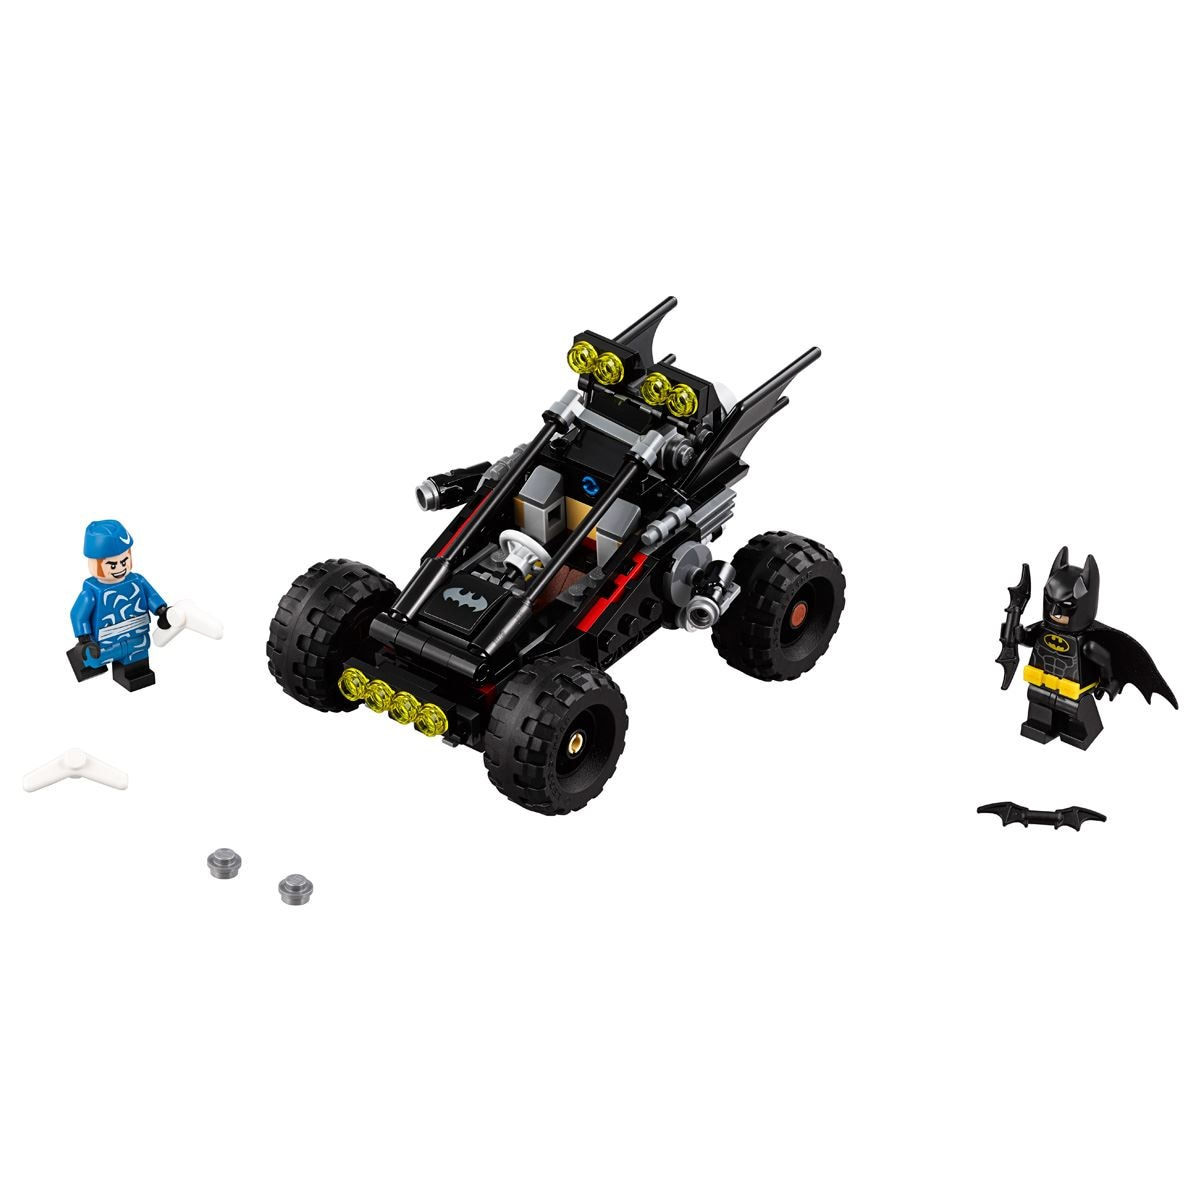 The lego batman movie batibuggy  - Sanborns